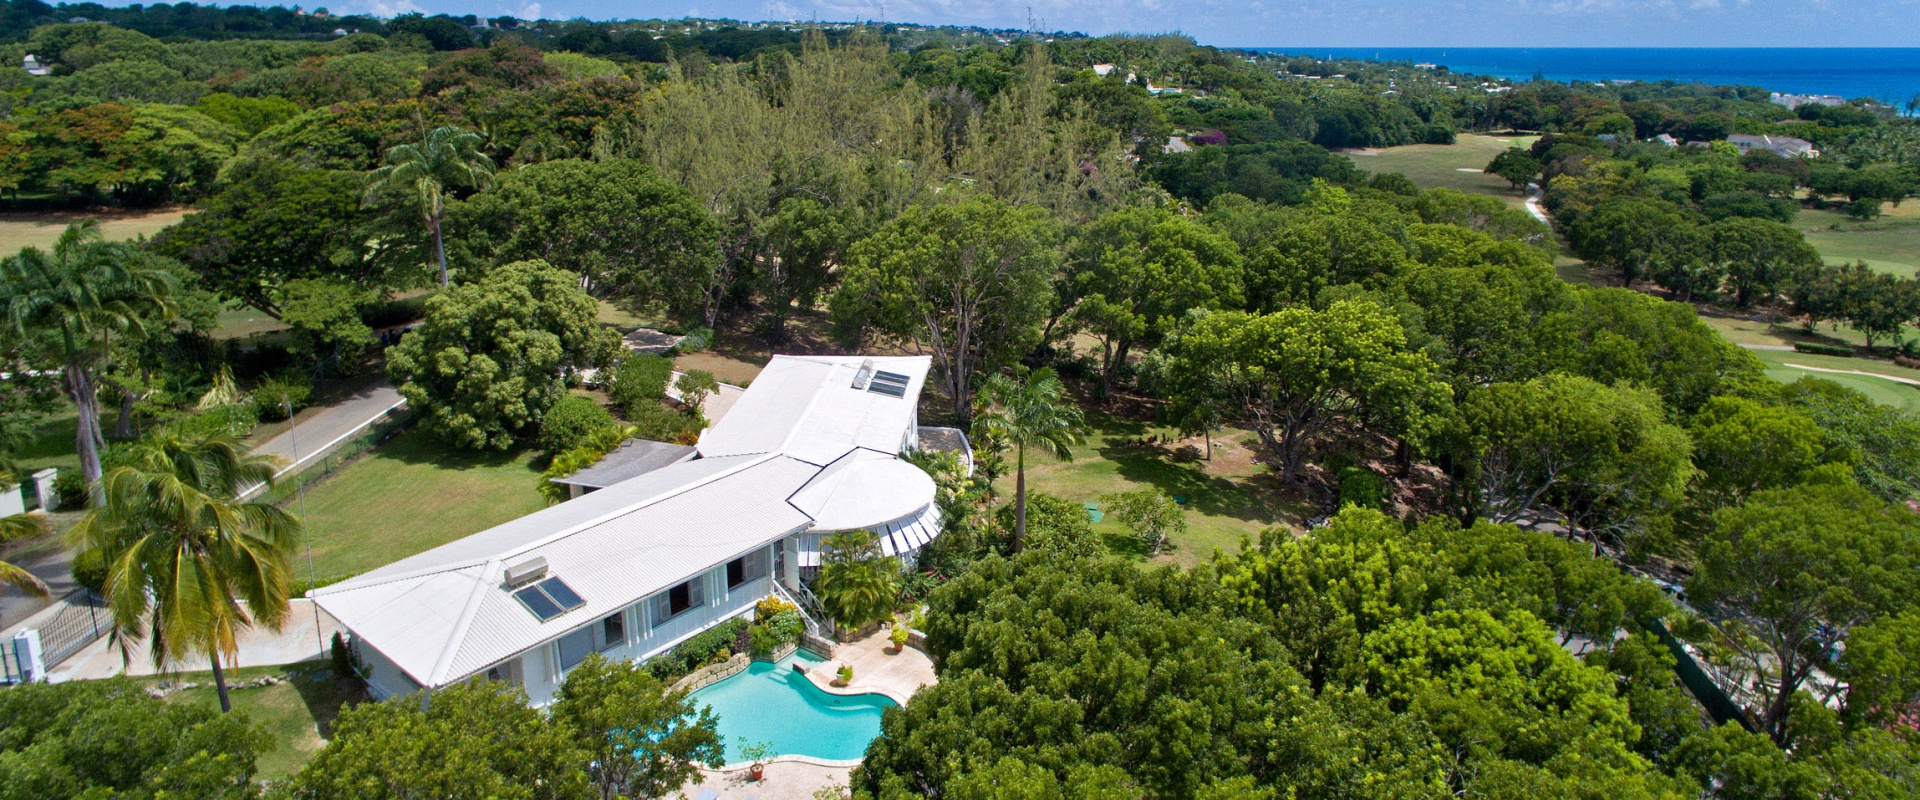 Halle Rose Sandy Lane West Coast For Vacation Holiday